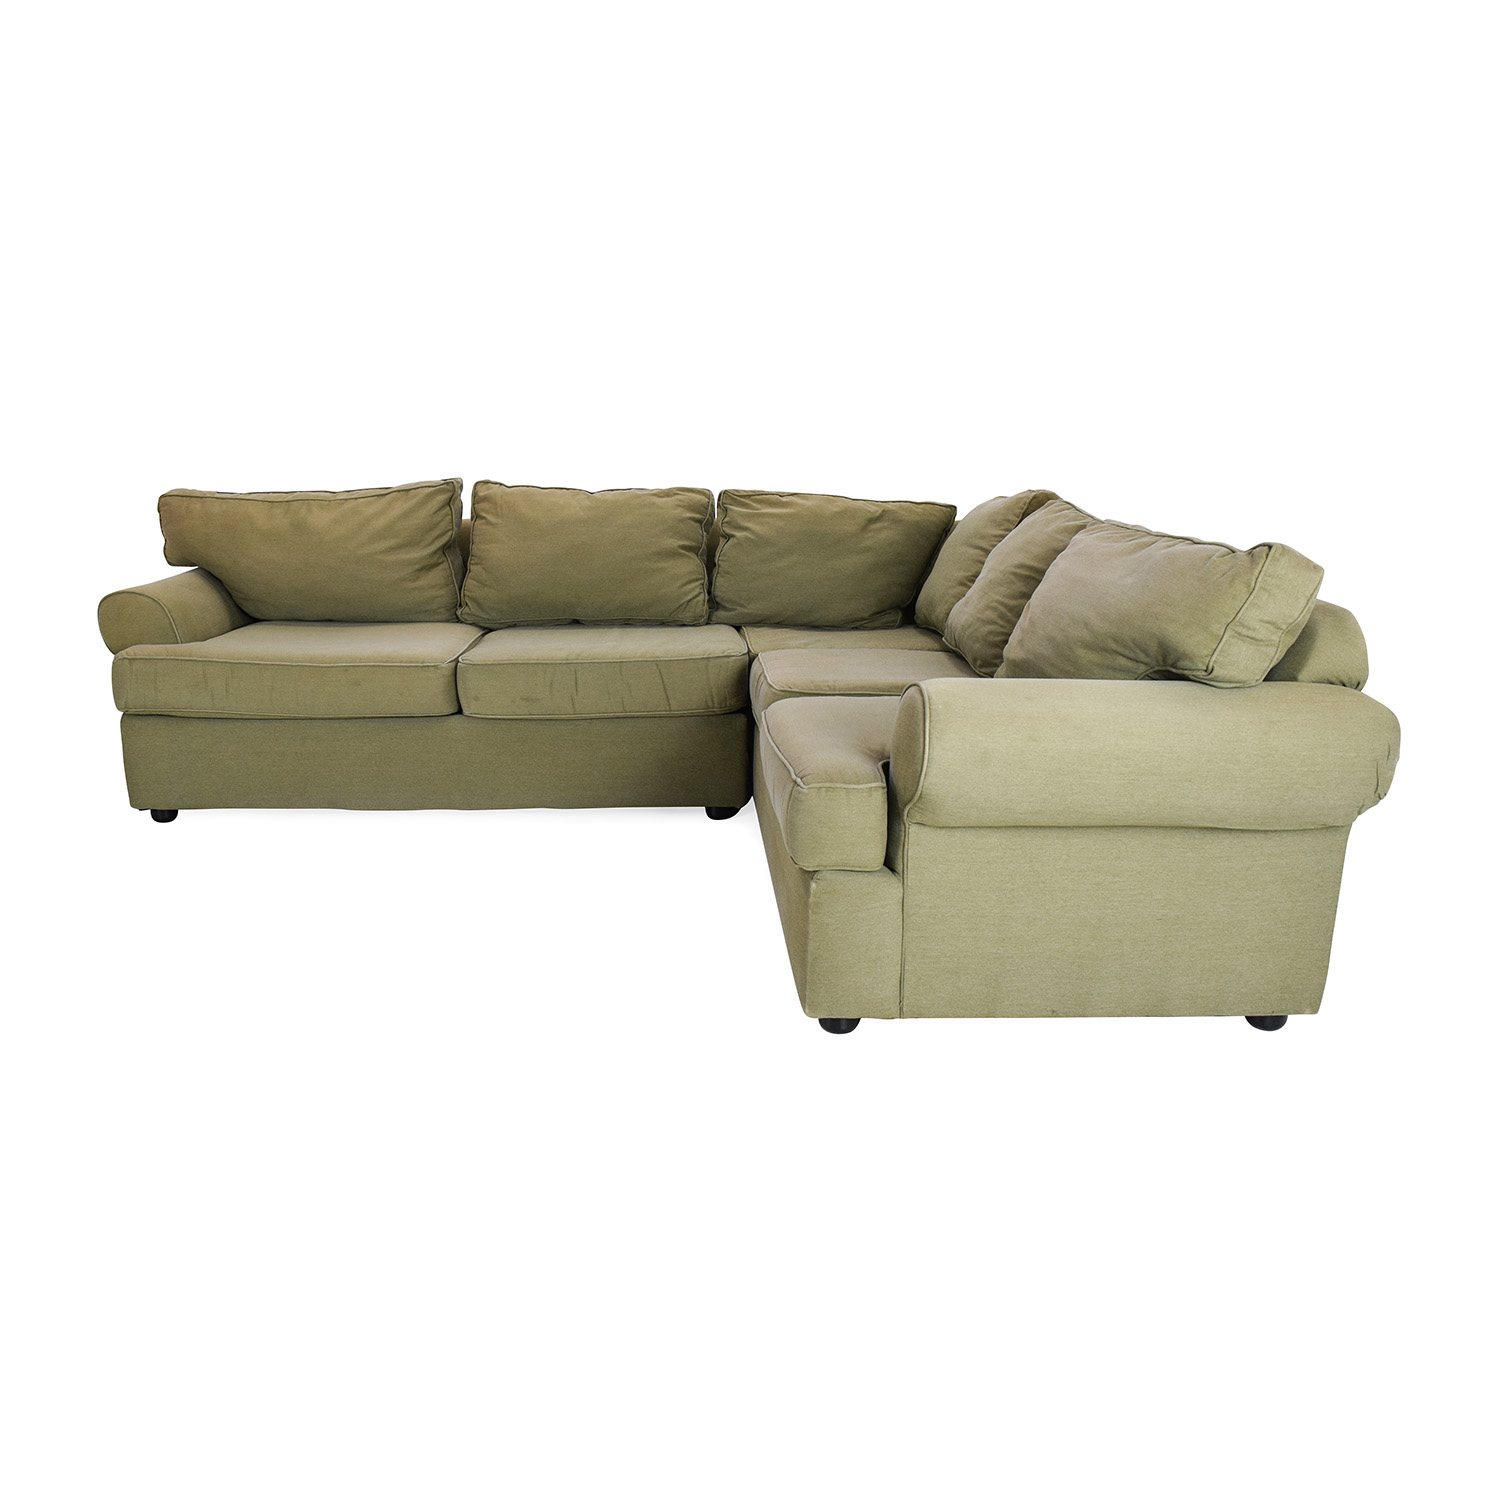 69% OFF Modani Modani Sectional Sofa Sofas